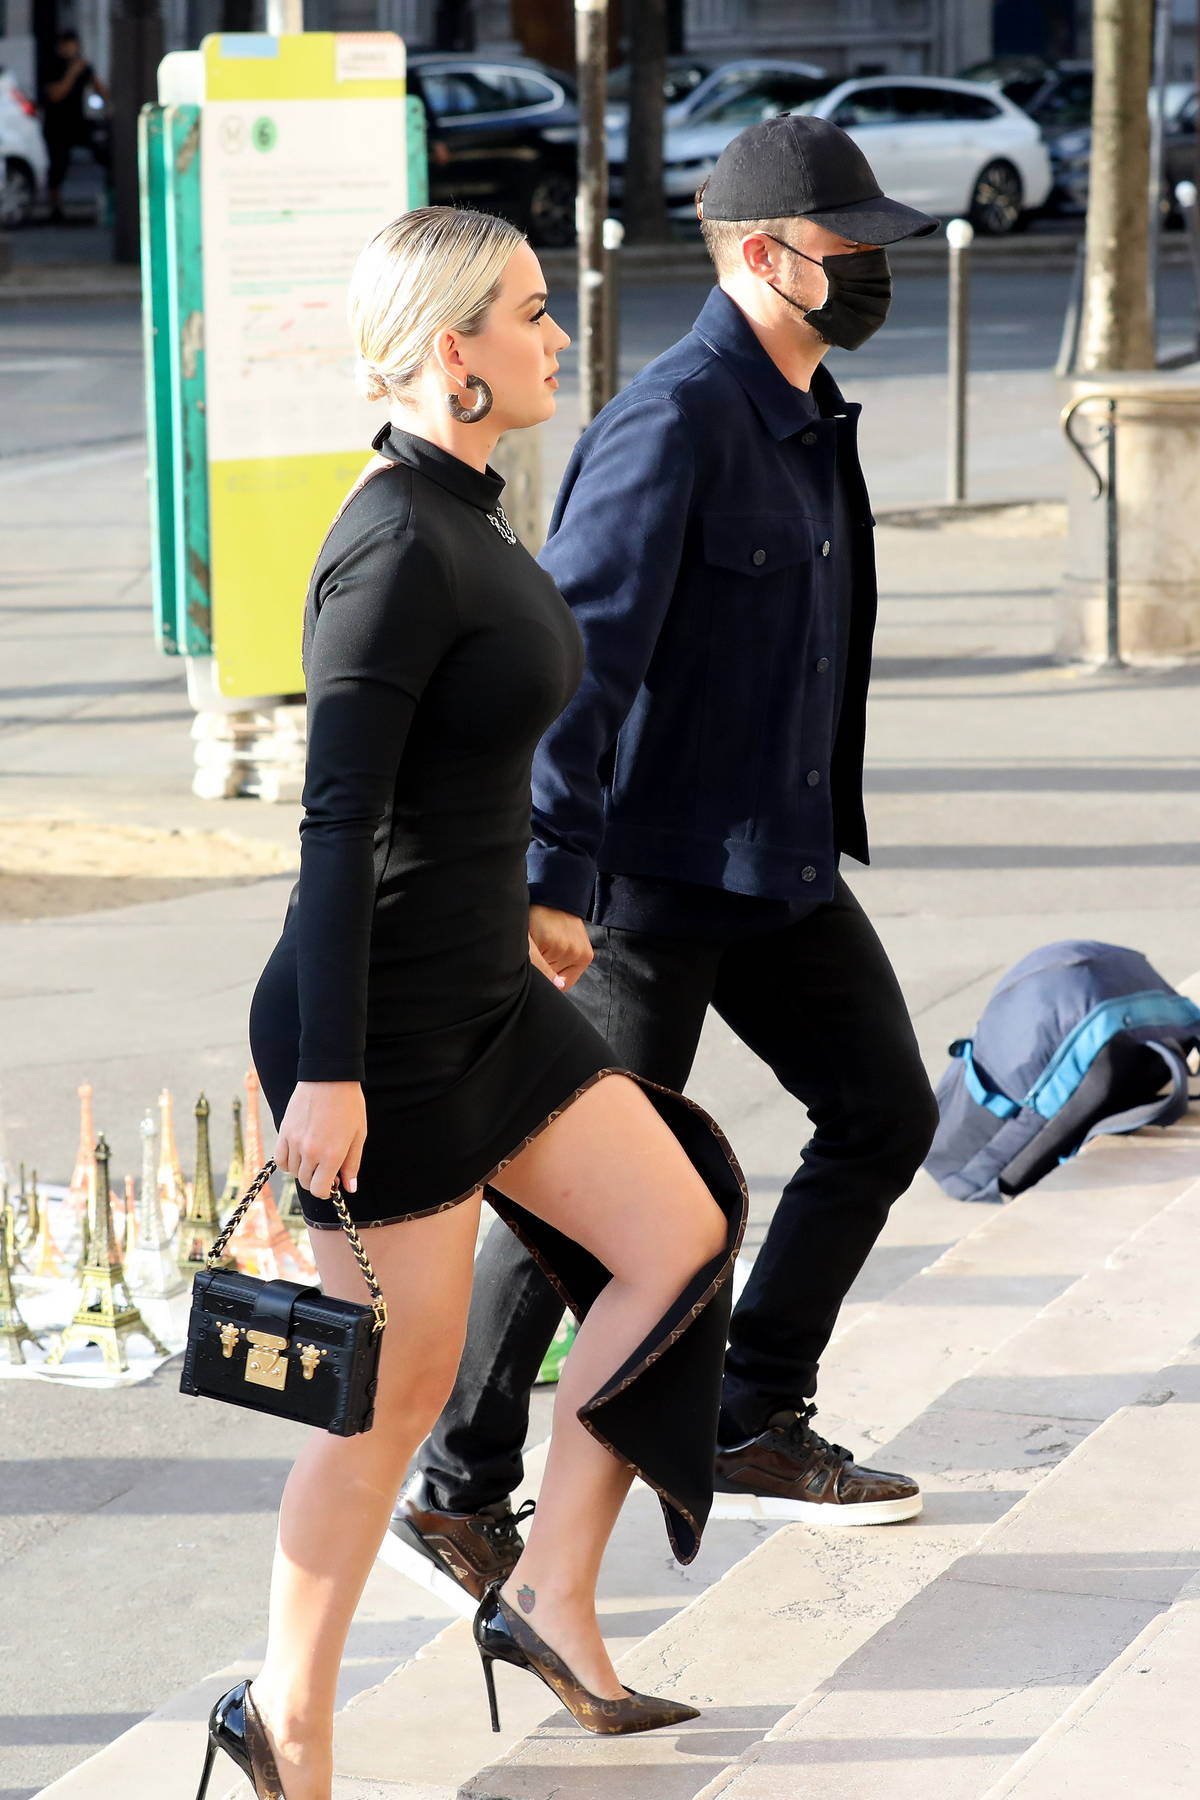 Katy Perry looks stunning in a black dress while heading to dinner with Orlando Bloom at the 'La Girafe' in Paris, France